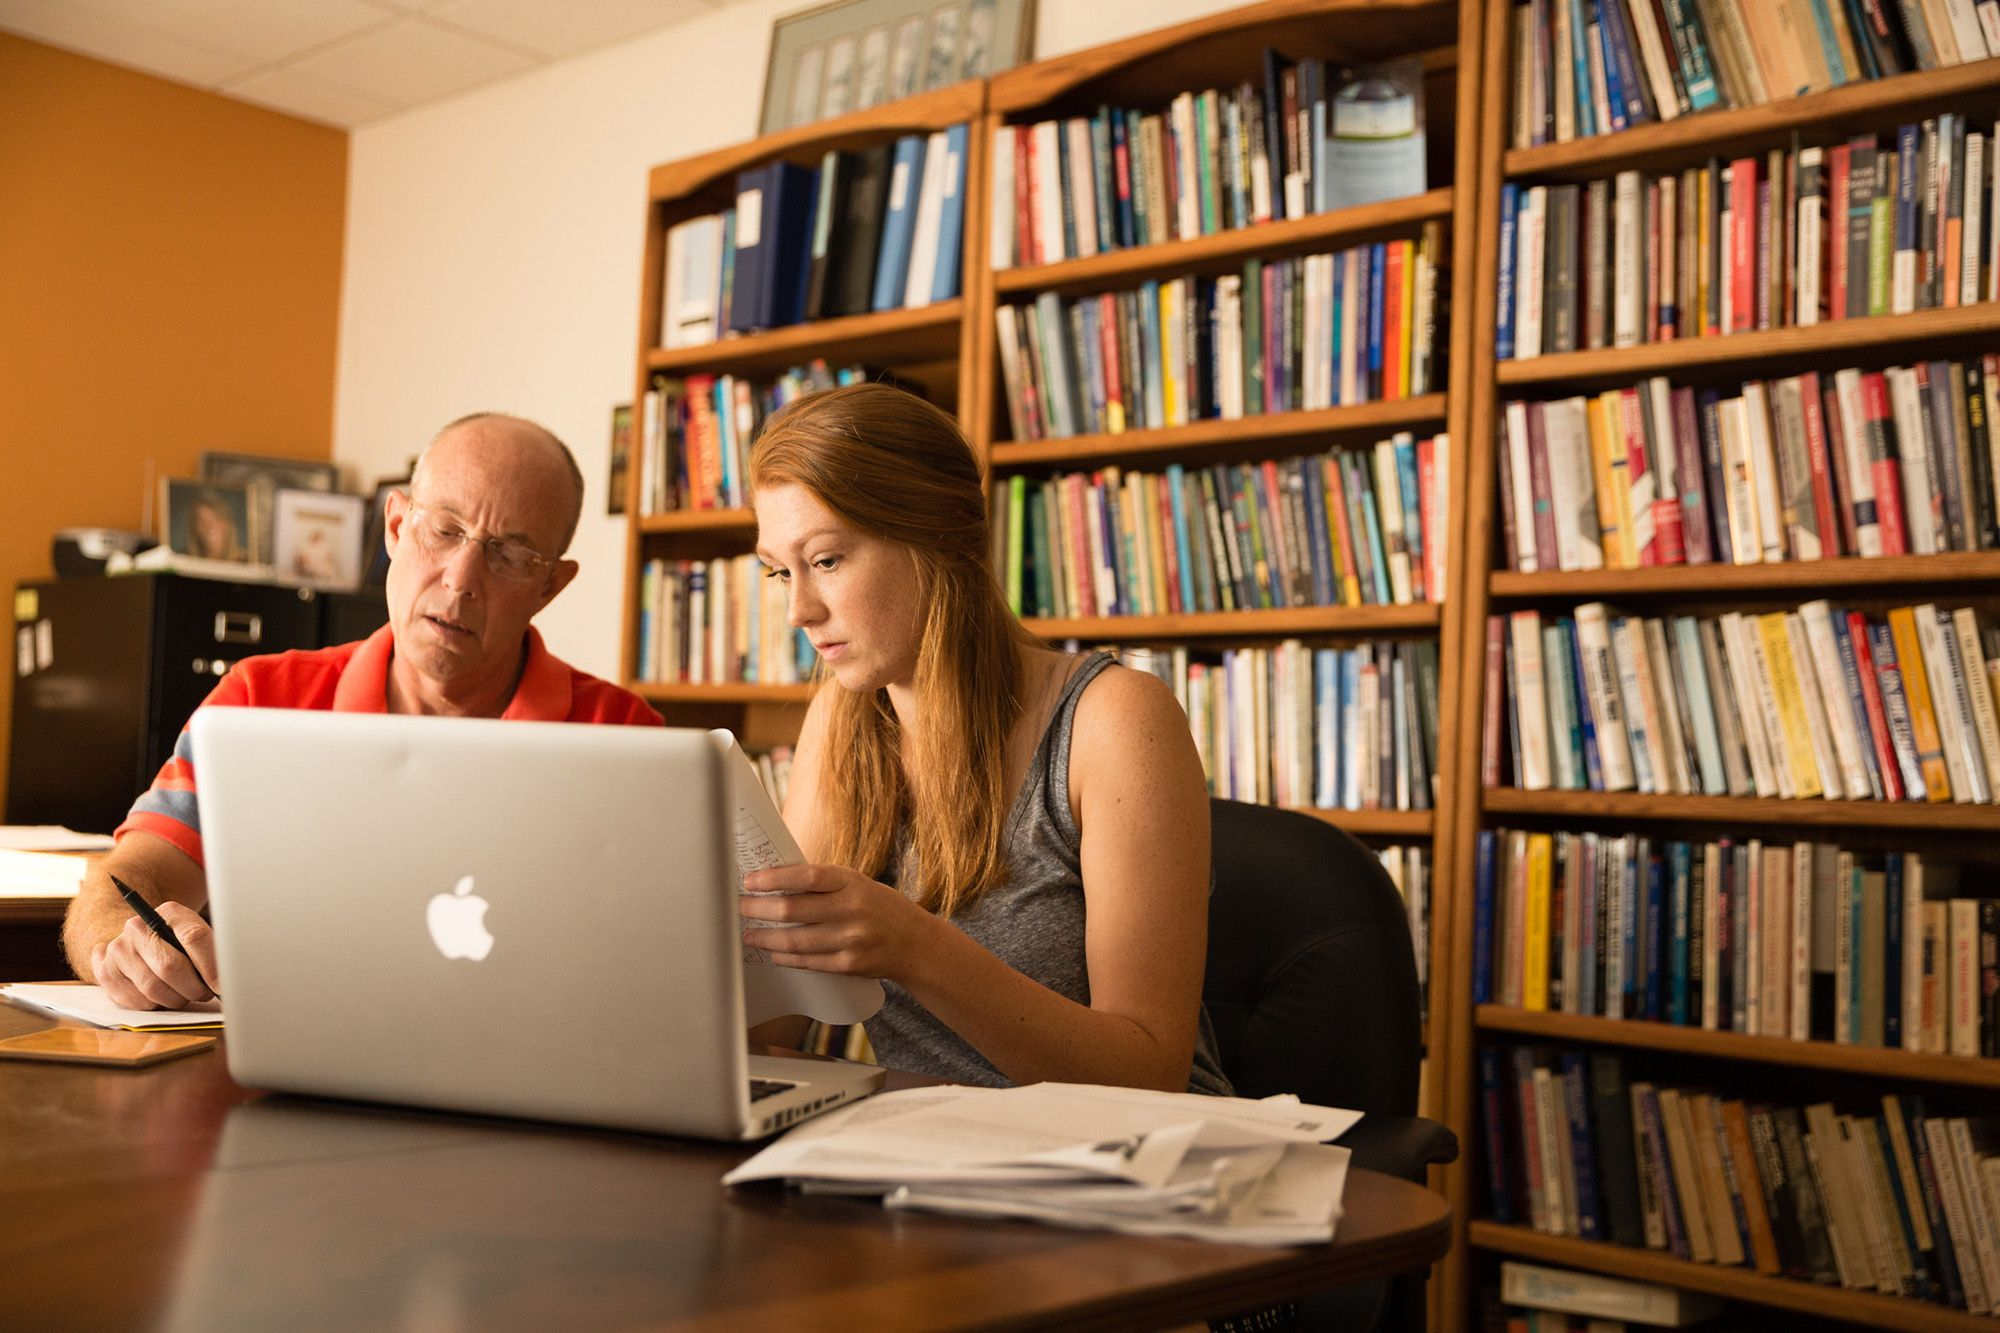 Political science professor Don Davison works with student on original research.